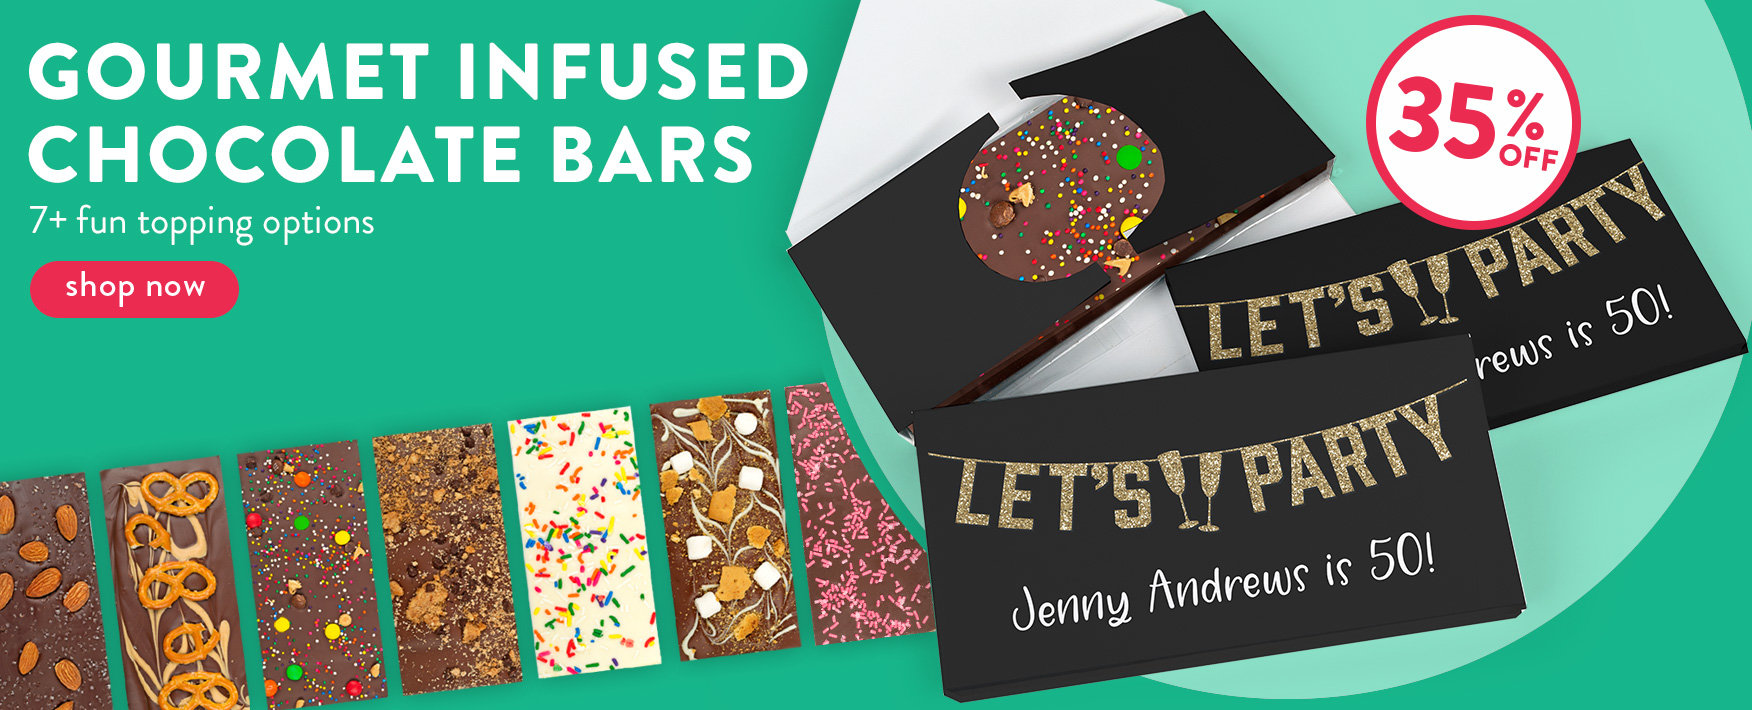 Infused Bars 35% Off